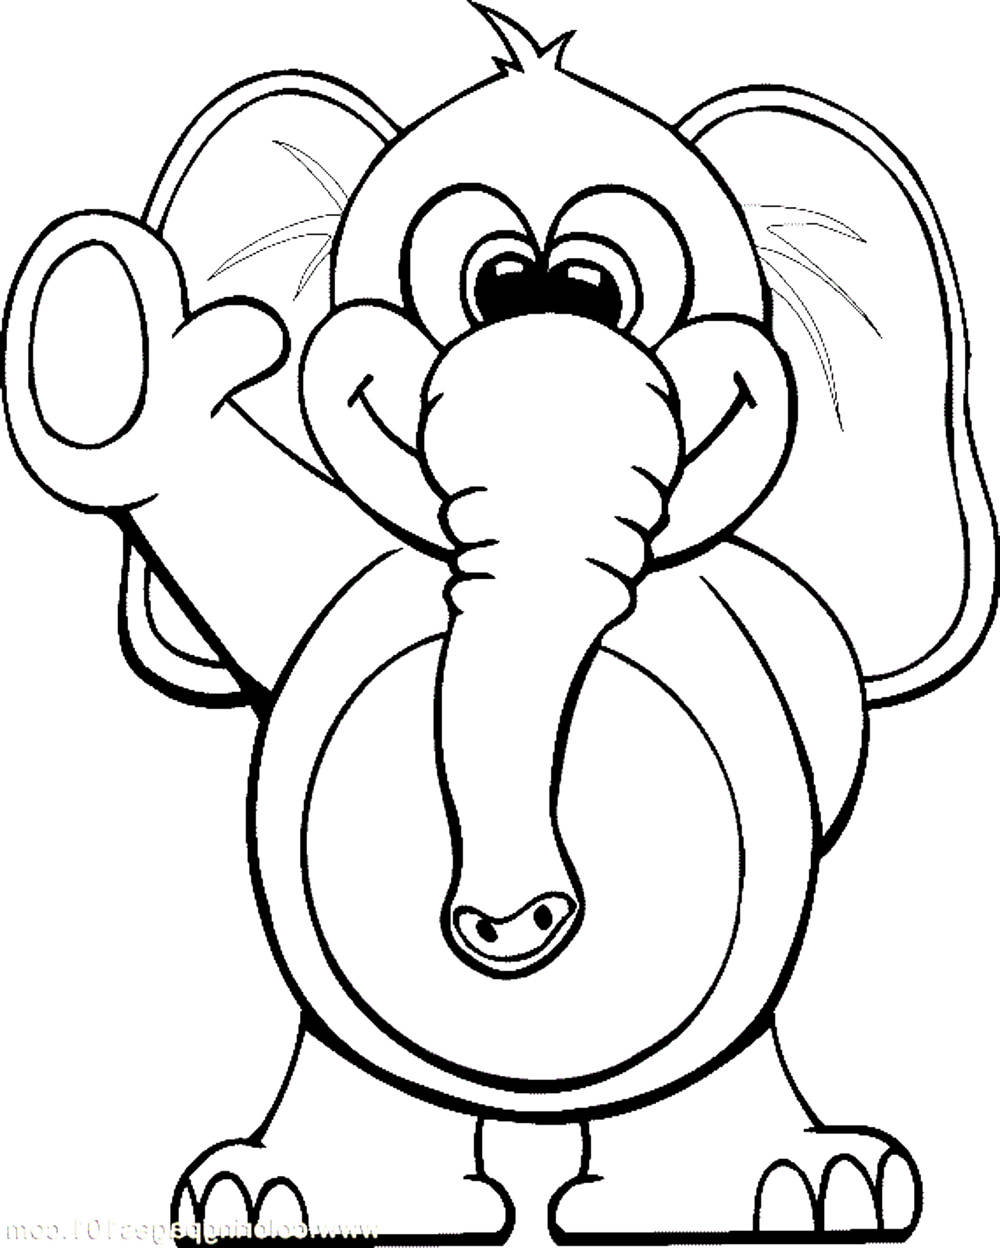 colouring pictures of elephant print download teaching kids through elephant coloring colouring elephant pictures of